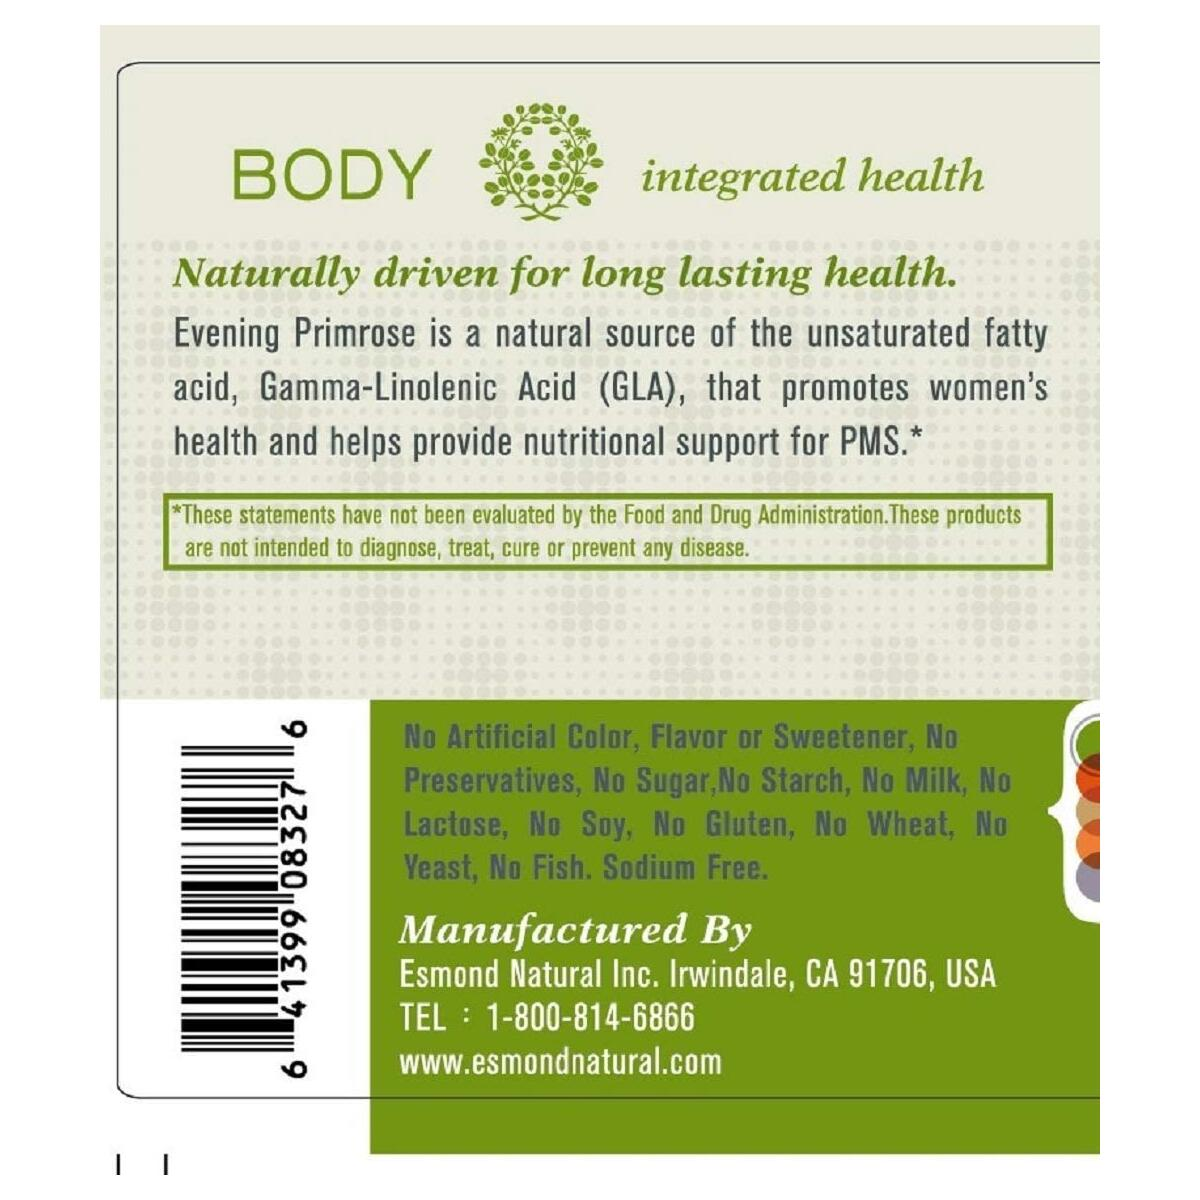 (5 Count, 25% Off) Esmond Natural: Evening Primrose Oil (Promotes Women Health, Natural Support for Women PMS), GMP, Natural Product Assn Certified, Made in USA-1000mg, 300 Softgels